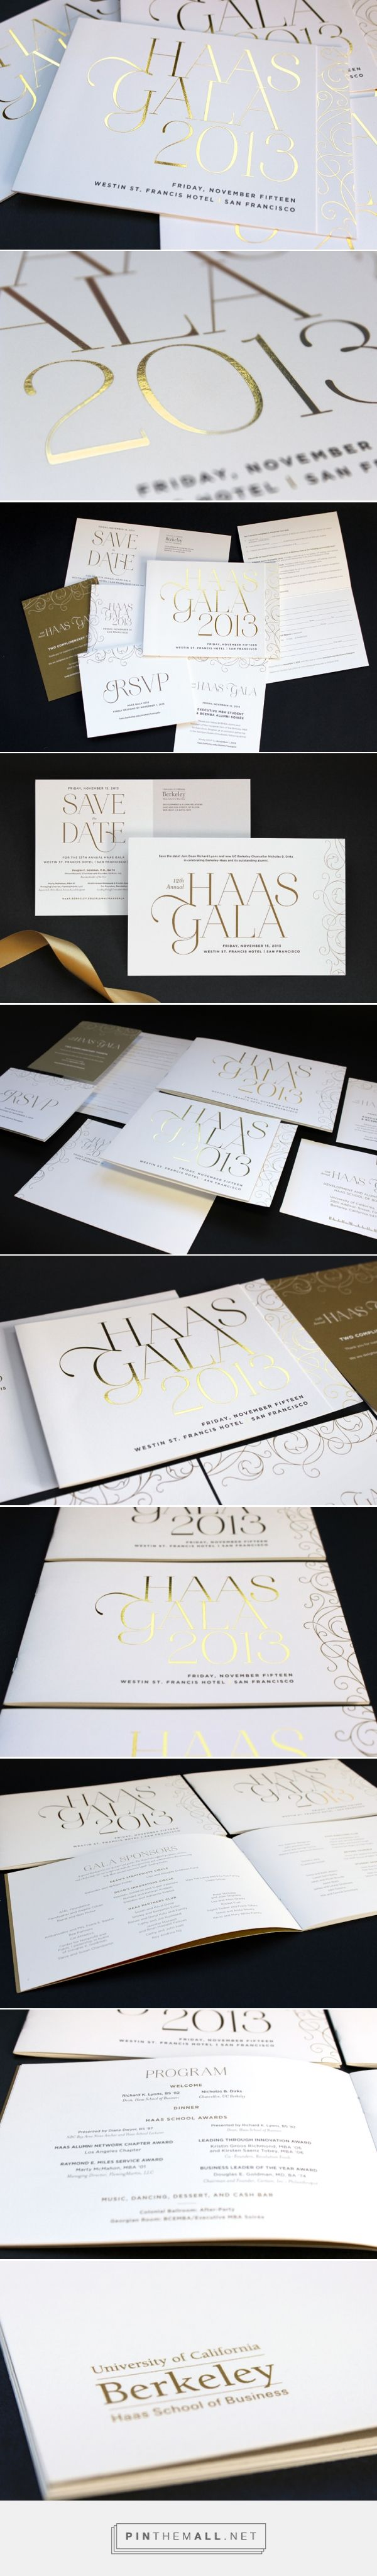 Haas Gala invitation suite. Gold foil, metallic ink, luxe cardstock. #foilstamp #invitation #gala #non-profit || Jody Worthington                                                                                                                                                                                 More